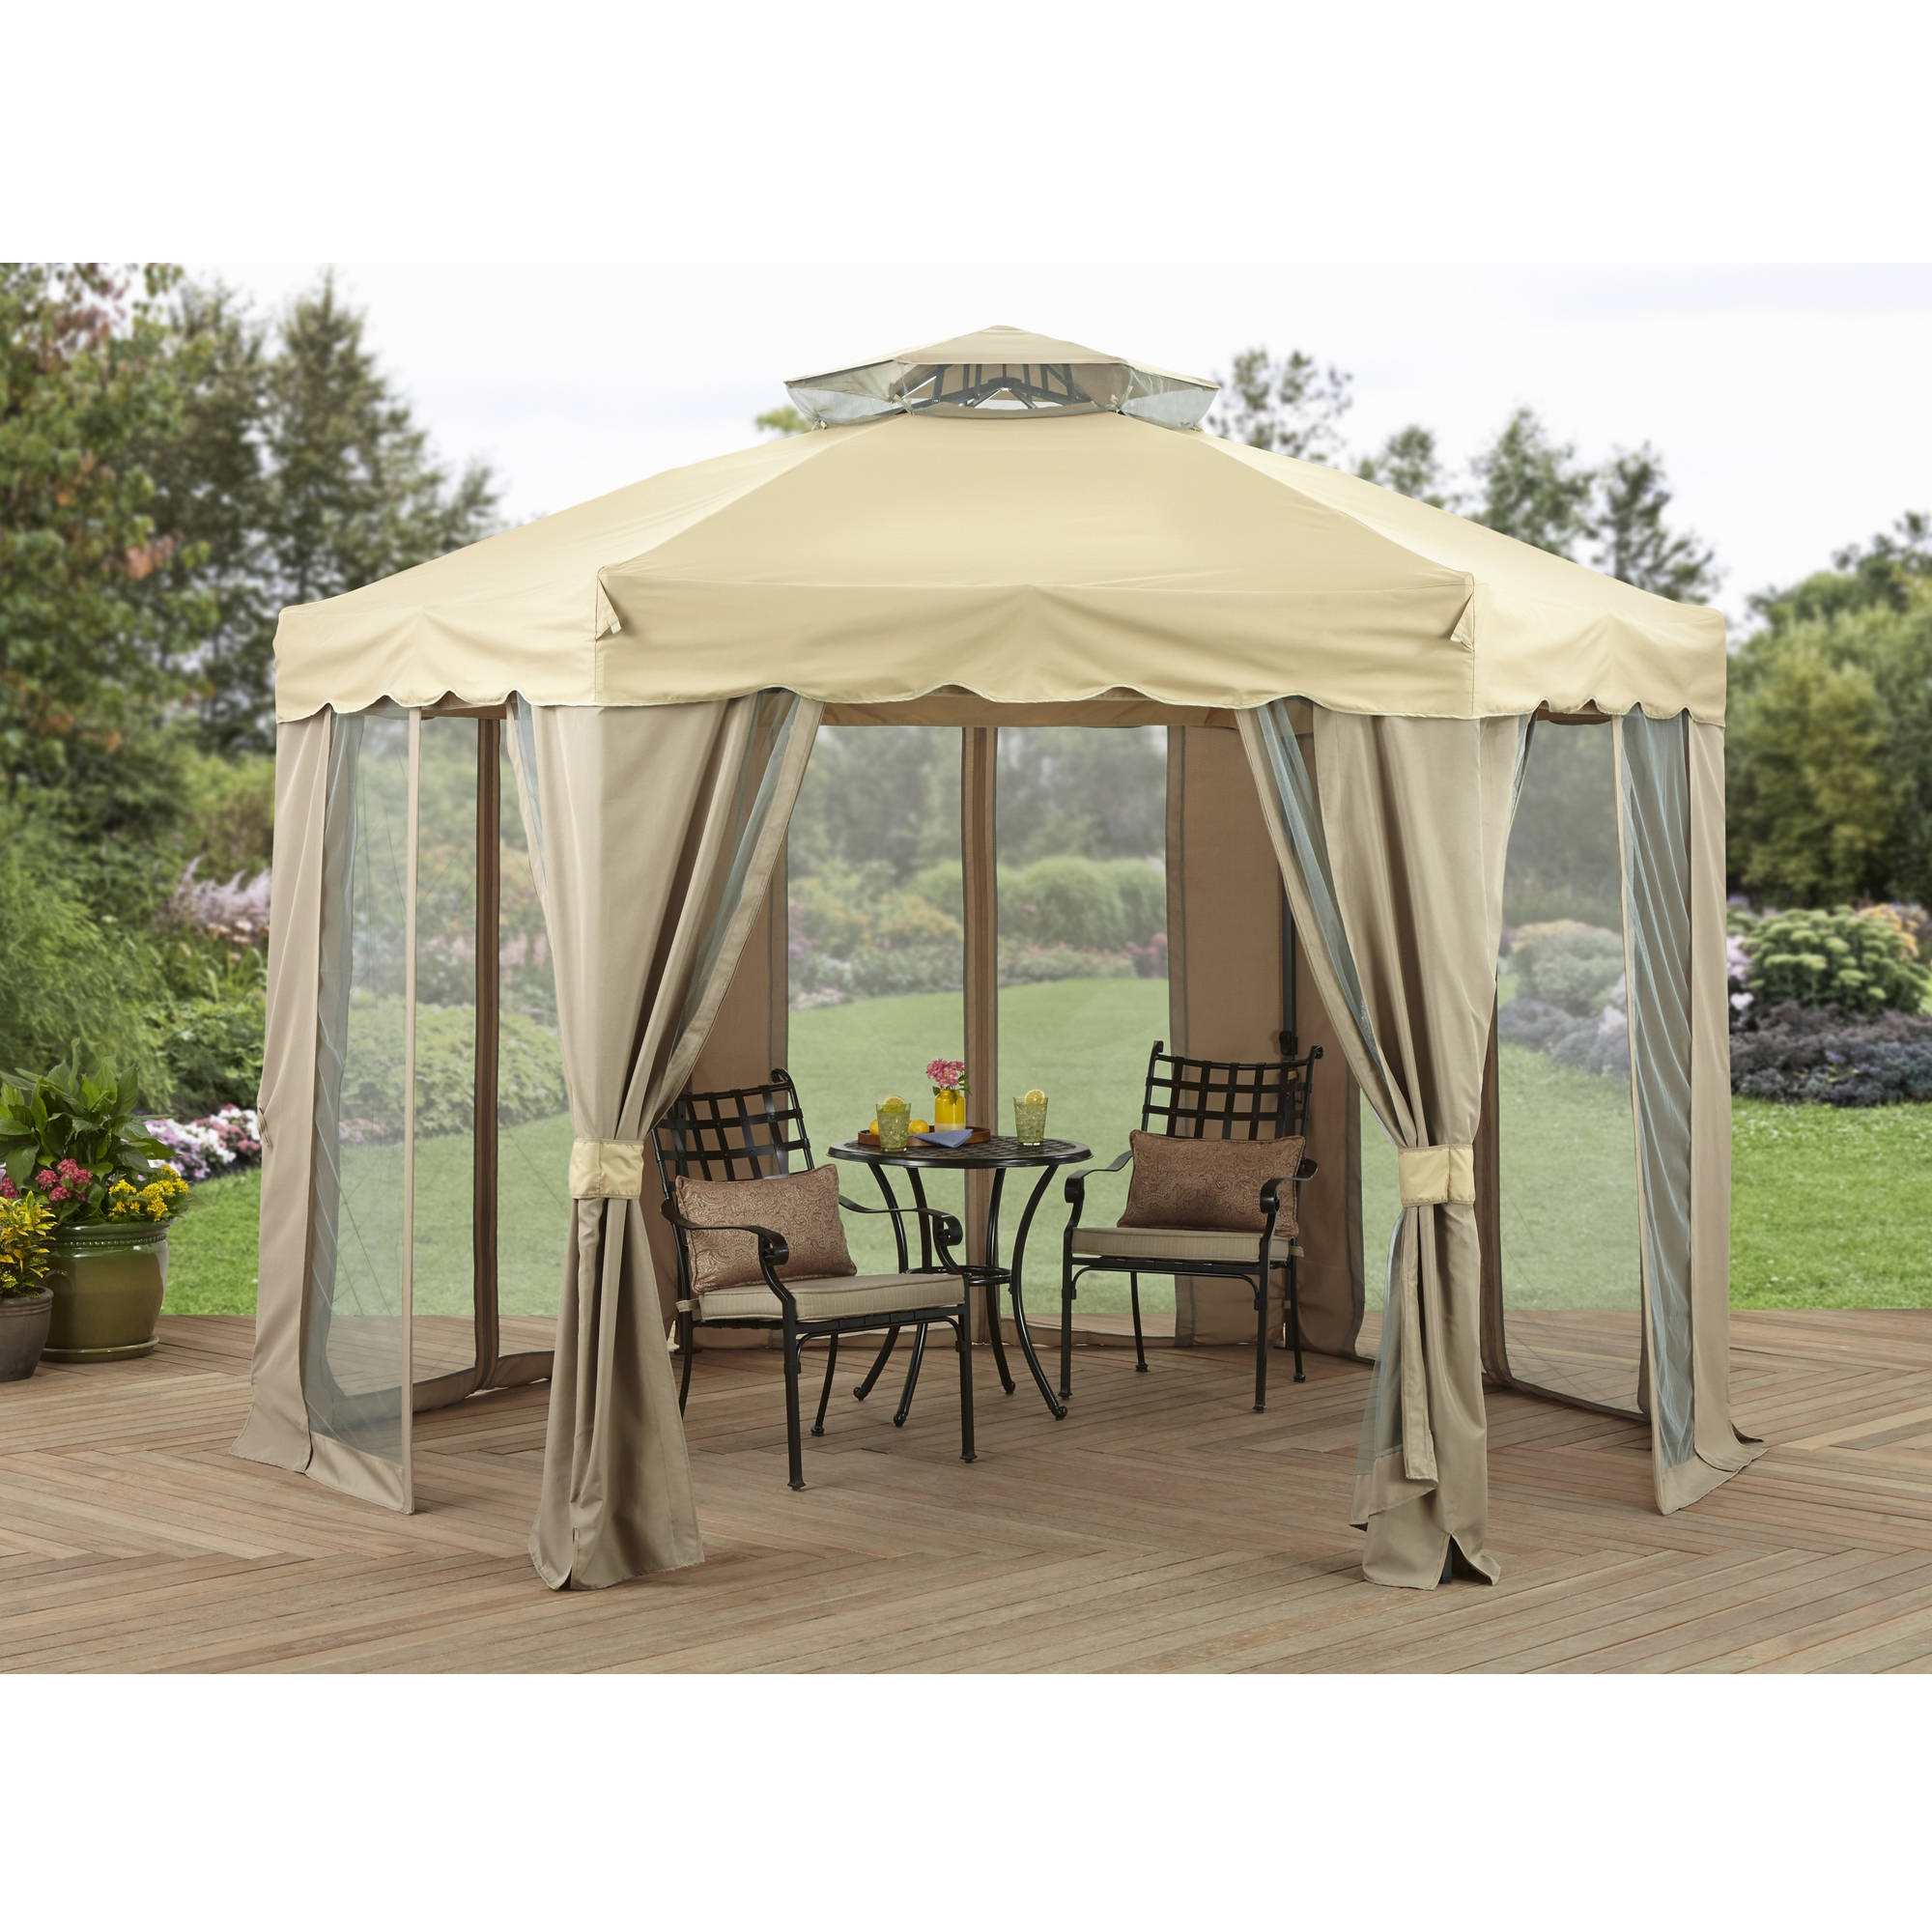 Better Homes and Gardens 12' x 12' Outdoor Gilded Grove Gazebo